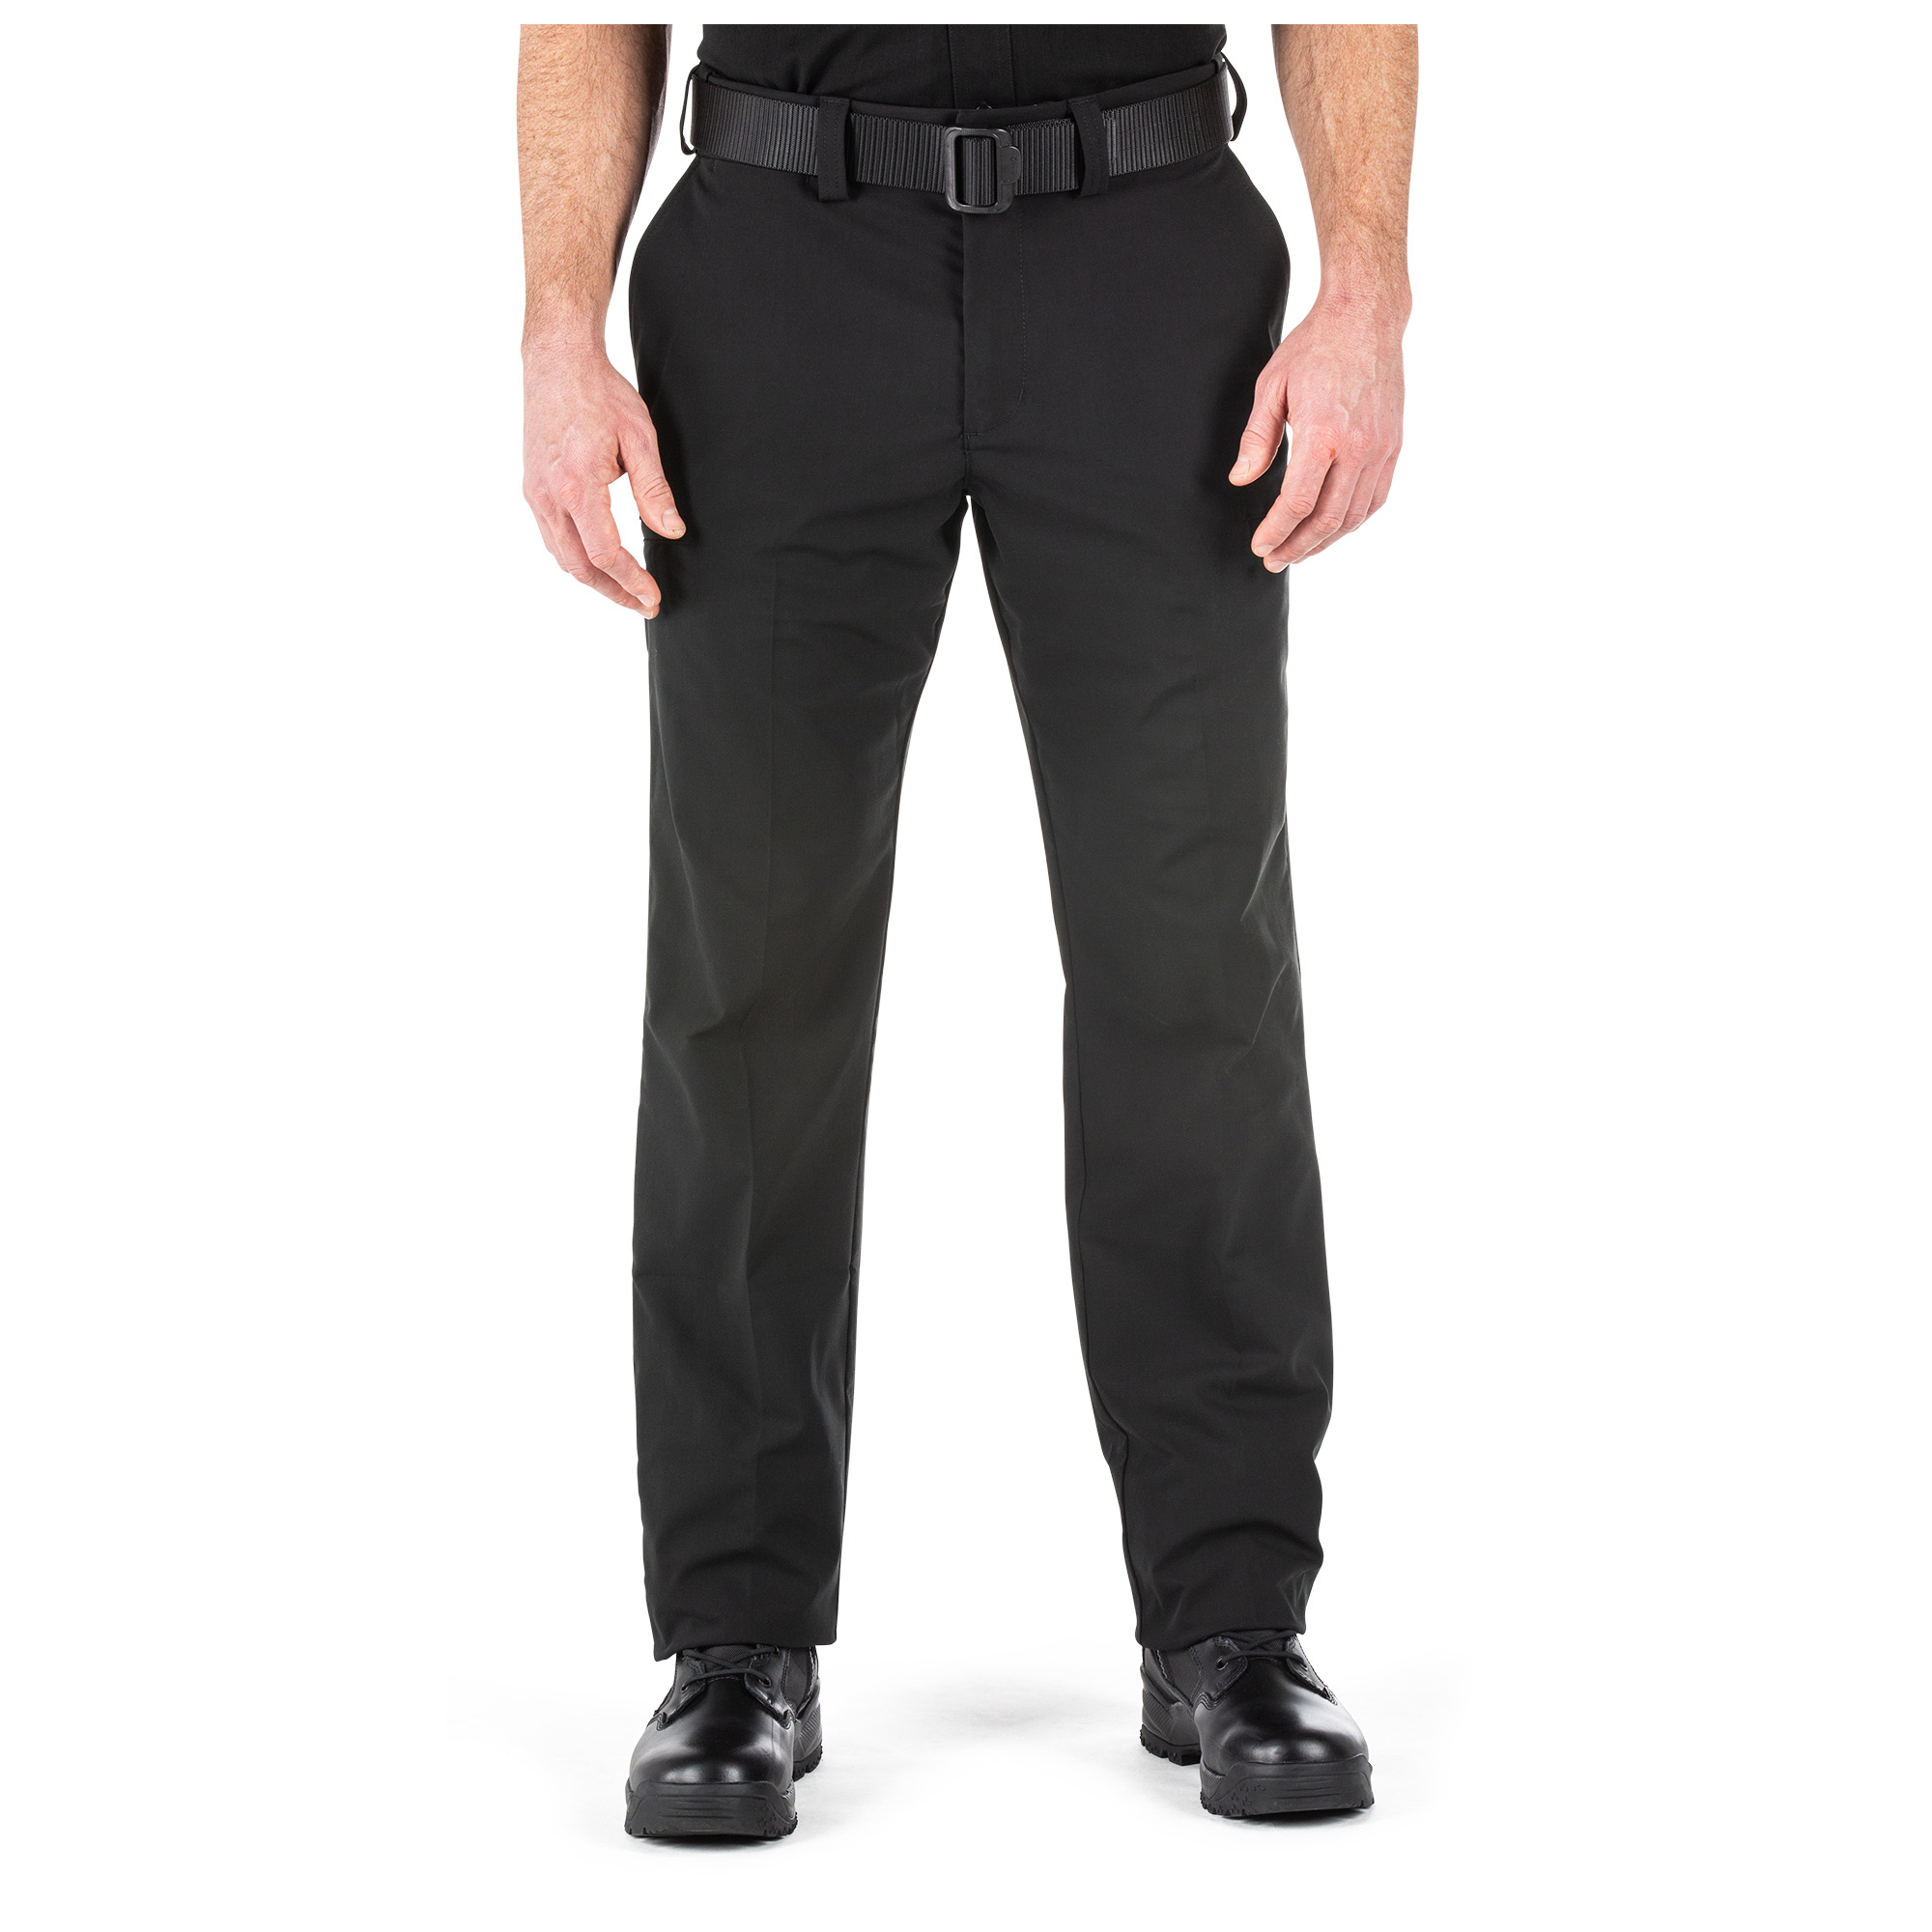 2e6979426f4 image of Class A Flex Tac Poly Wool Cargo Pant with sku 888579268034